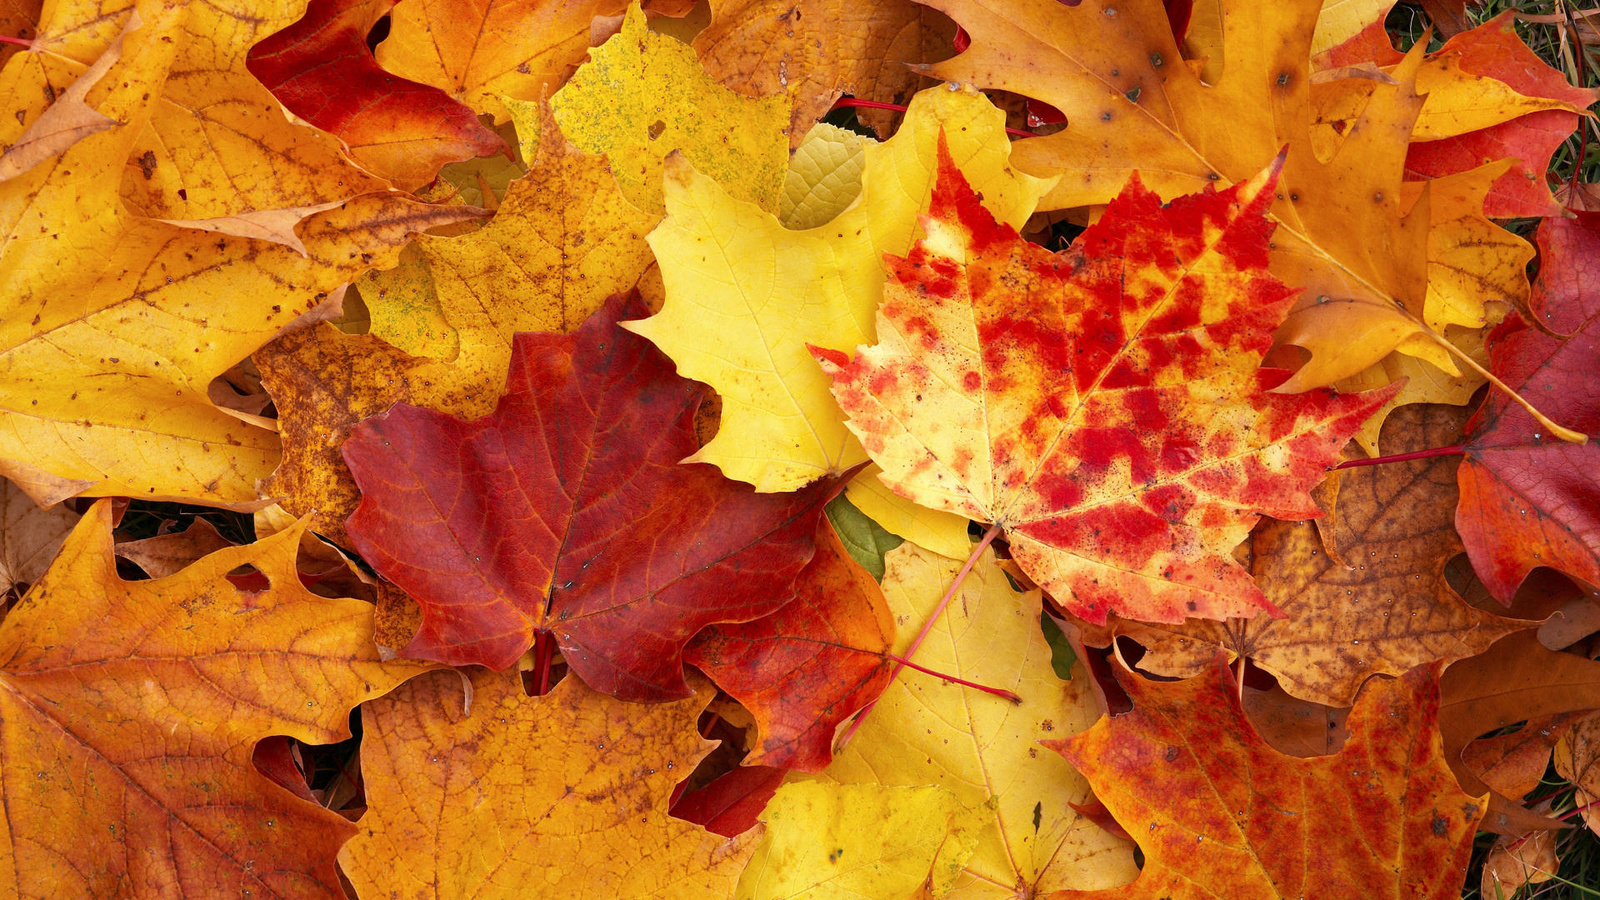 21835 download wallpaper Plants, Autumn, Leaves screensavers and pictures for free